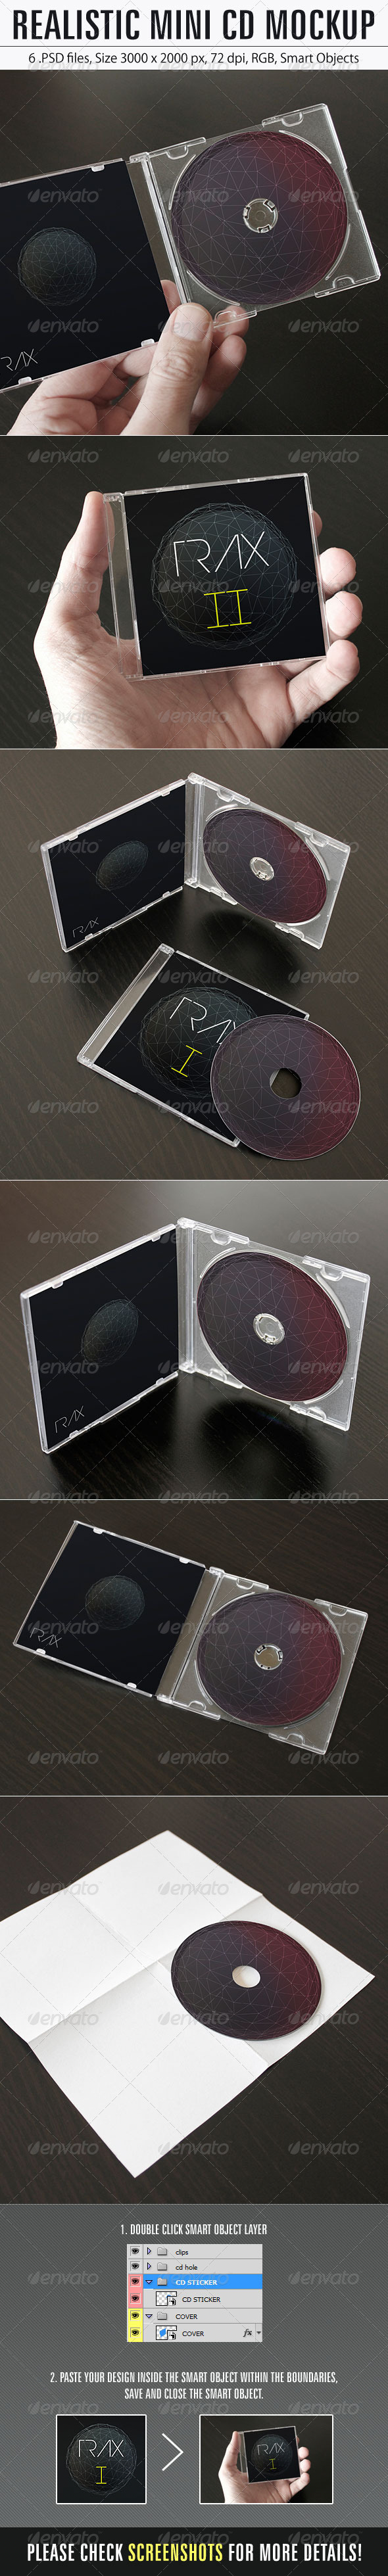 Realistic Mini CD Mockup - Product Mock-Ups Graphics